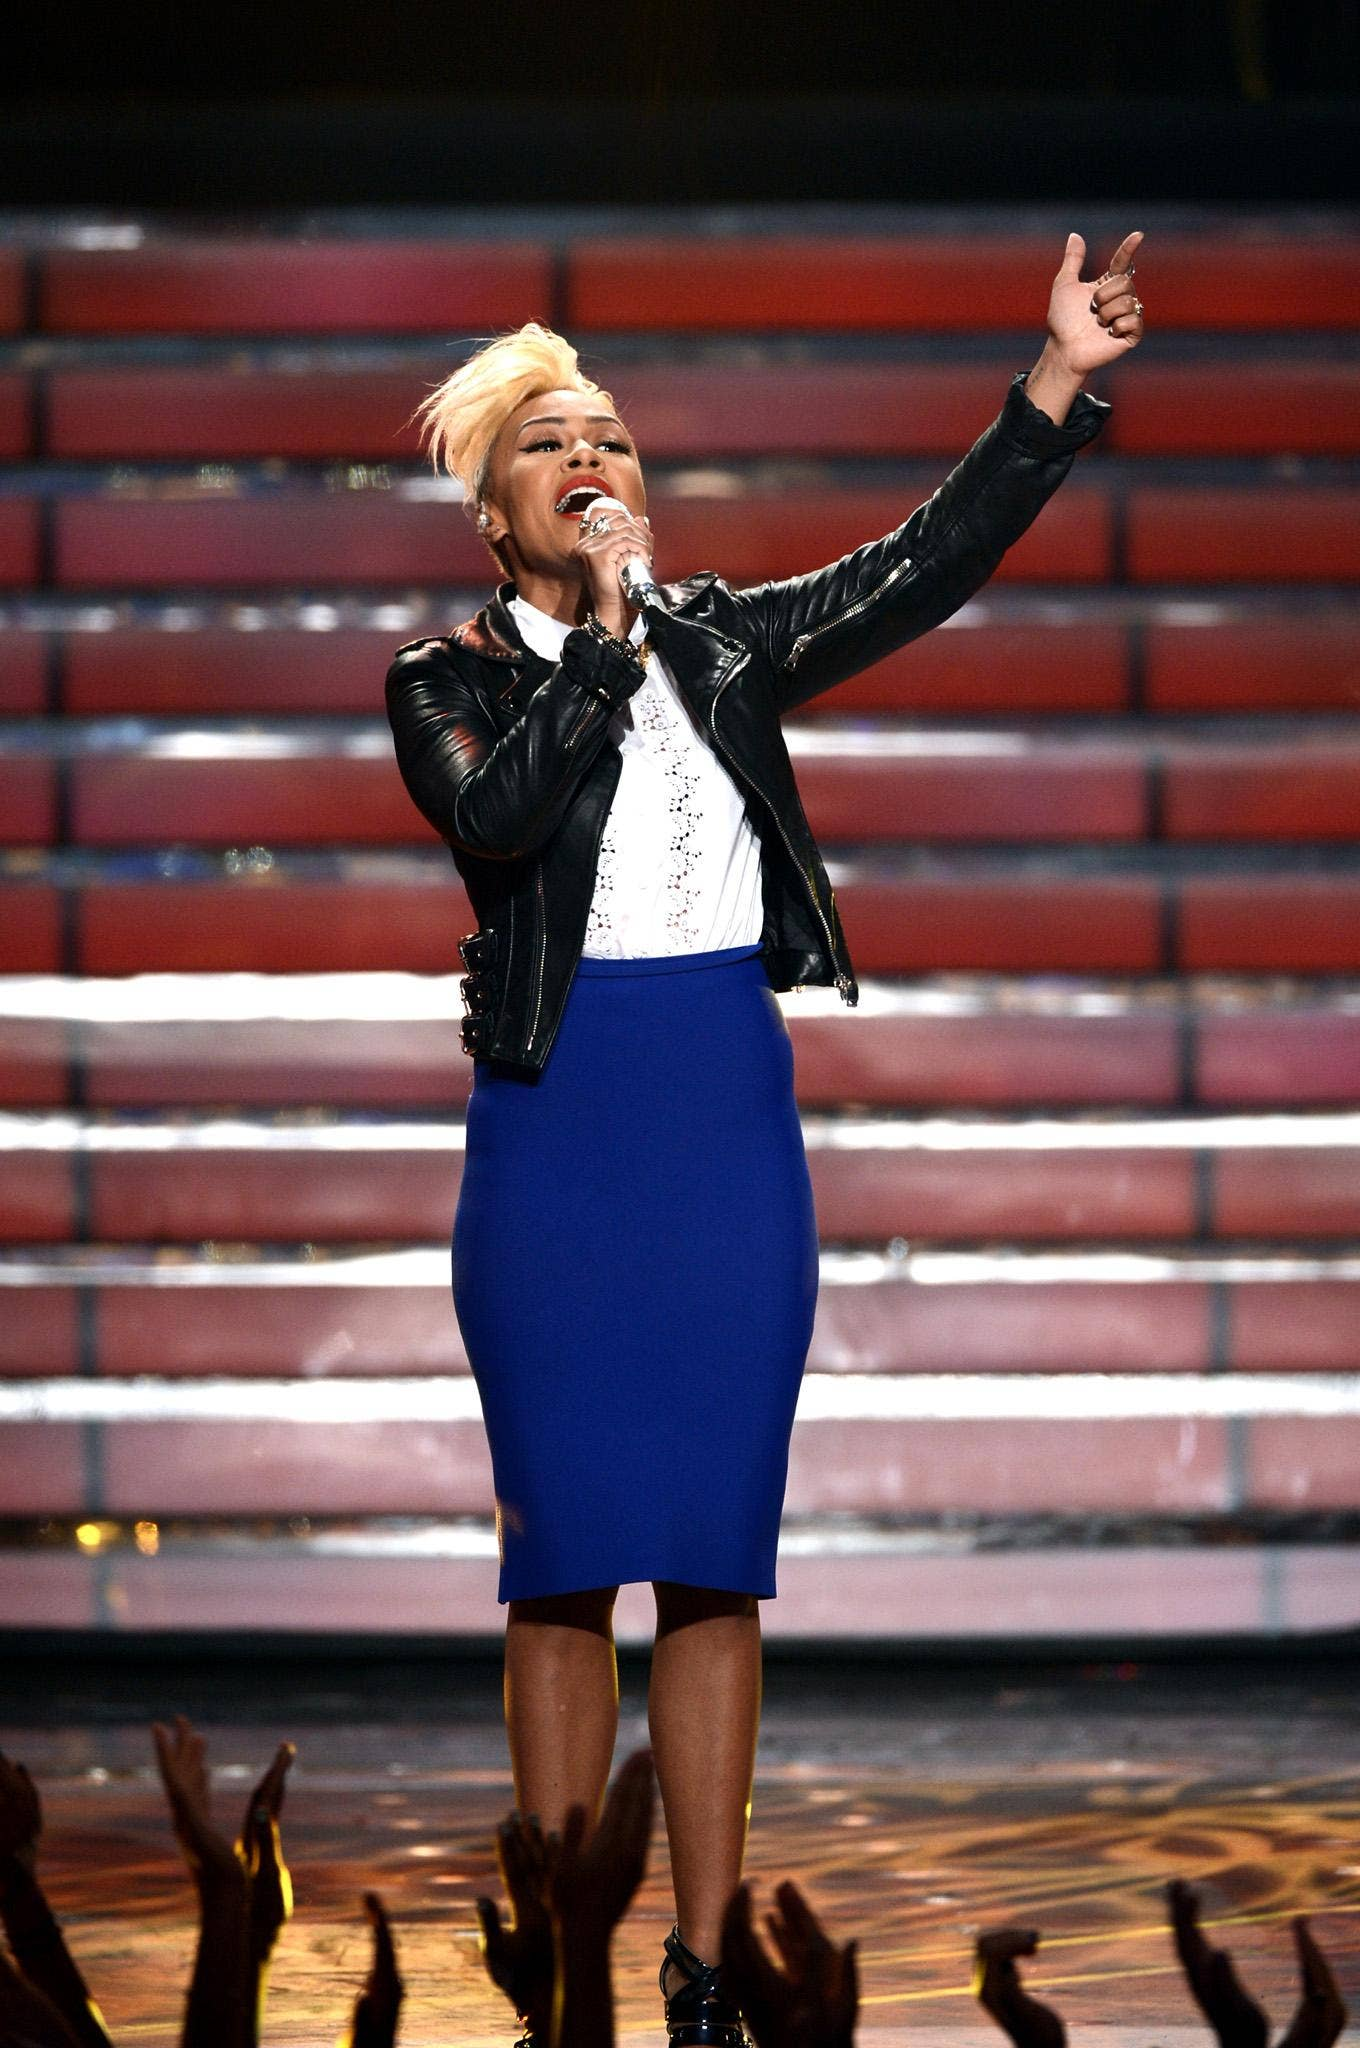 Emeli Sandé was not present at last night's Ivor Novello awards to collect her two prizes